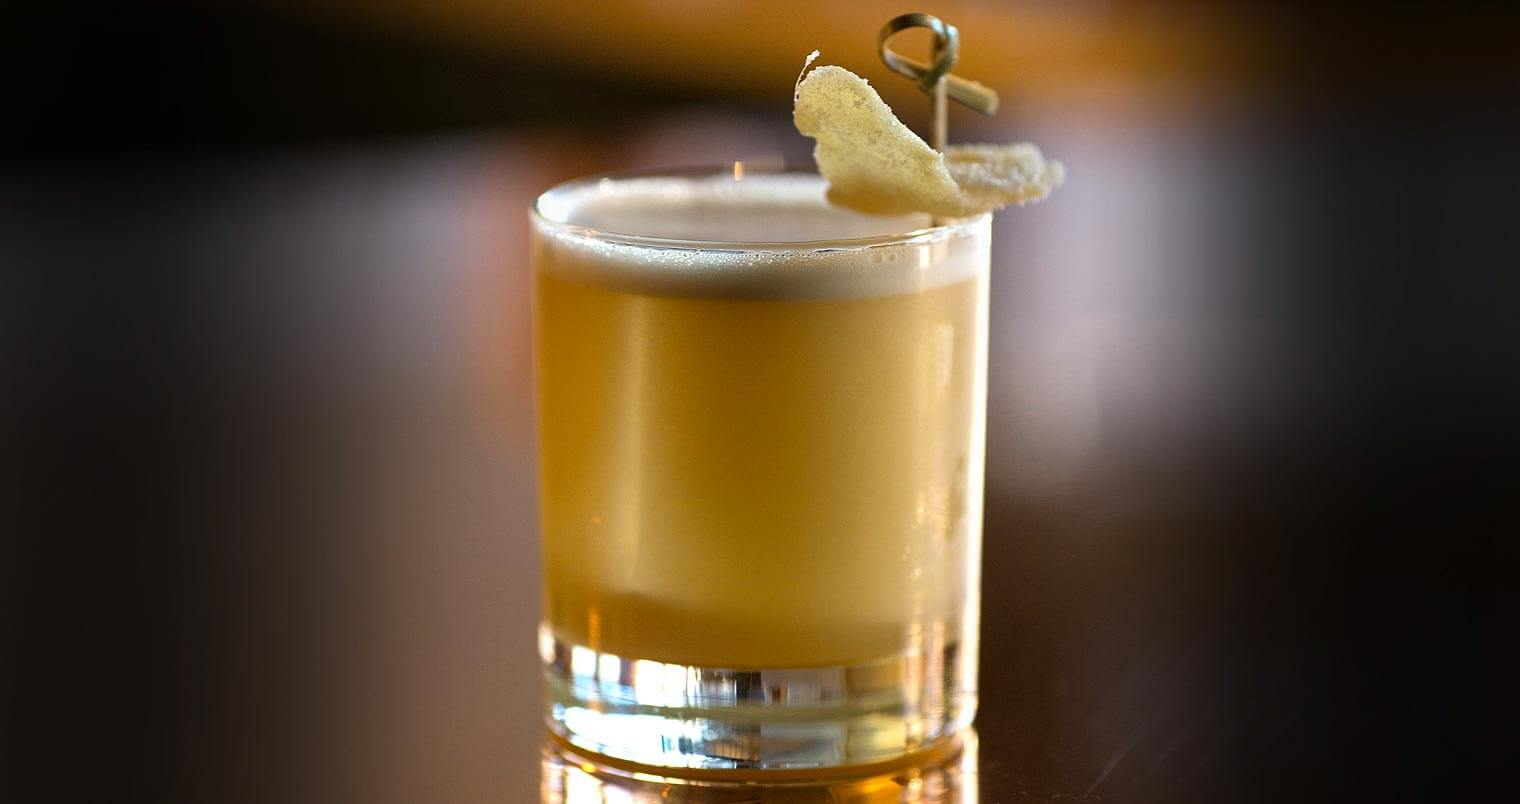 Celebrate National Scotch Day with a Dewar's Penicillin Cocktail, featured image